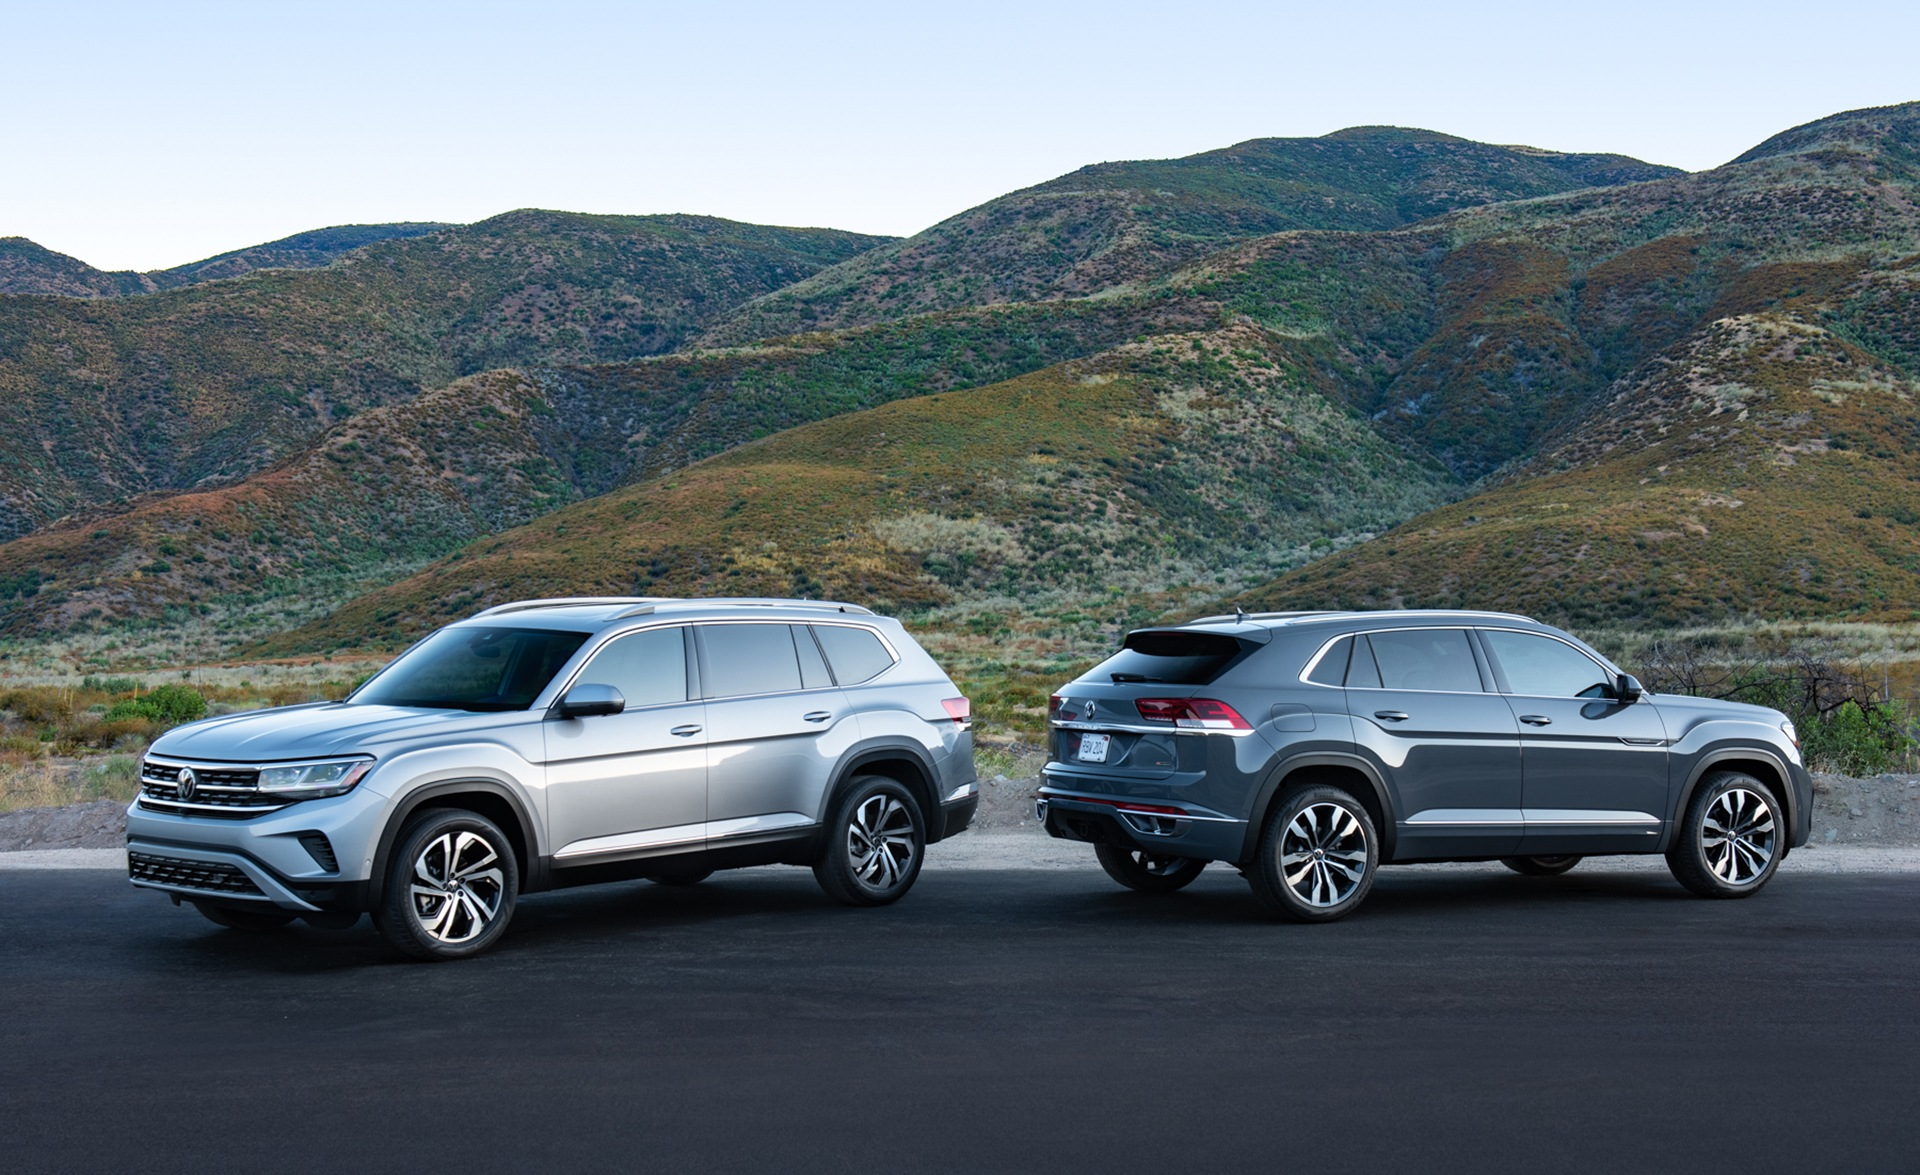 2021 Volkswagen Atlas and 2020 Volkswagen Atlas Cross Sport